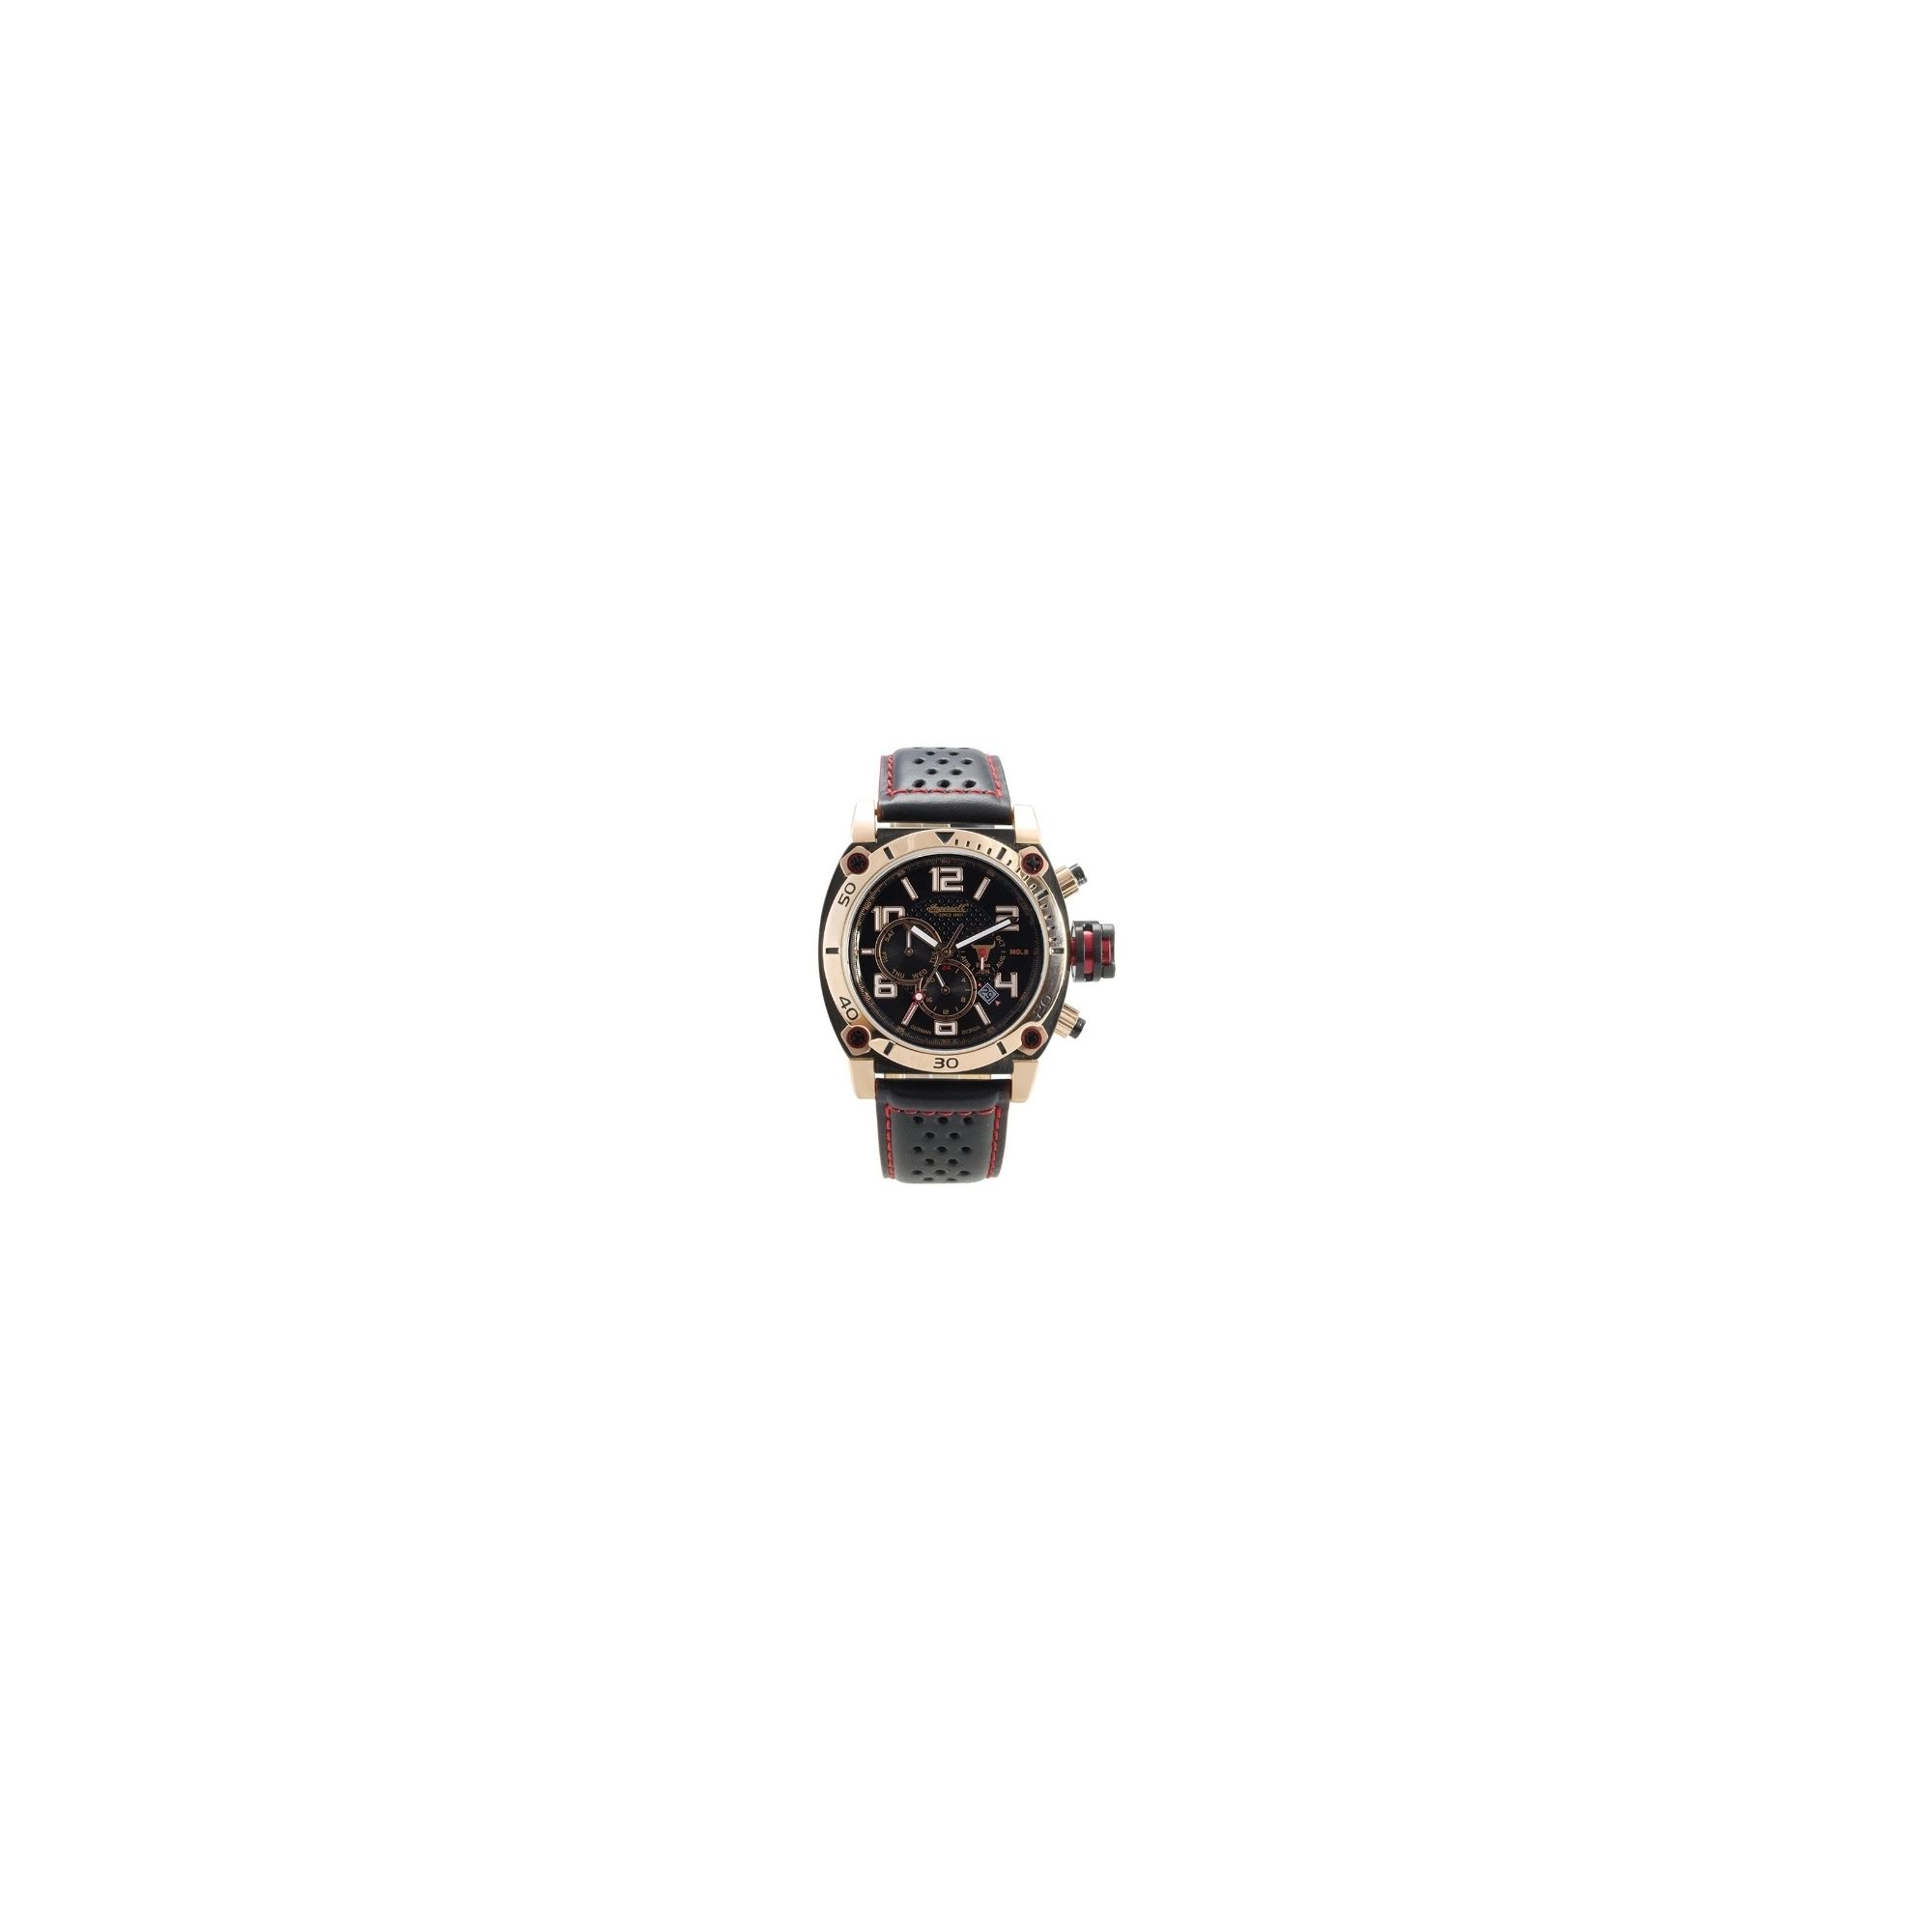 Ingersoll Bison No 8 Strap Watch IN2806RBK at Tesco Direct